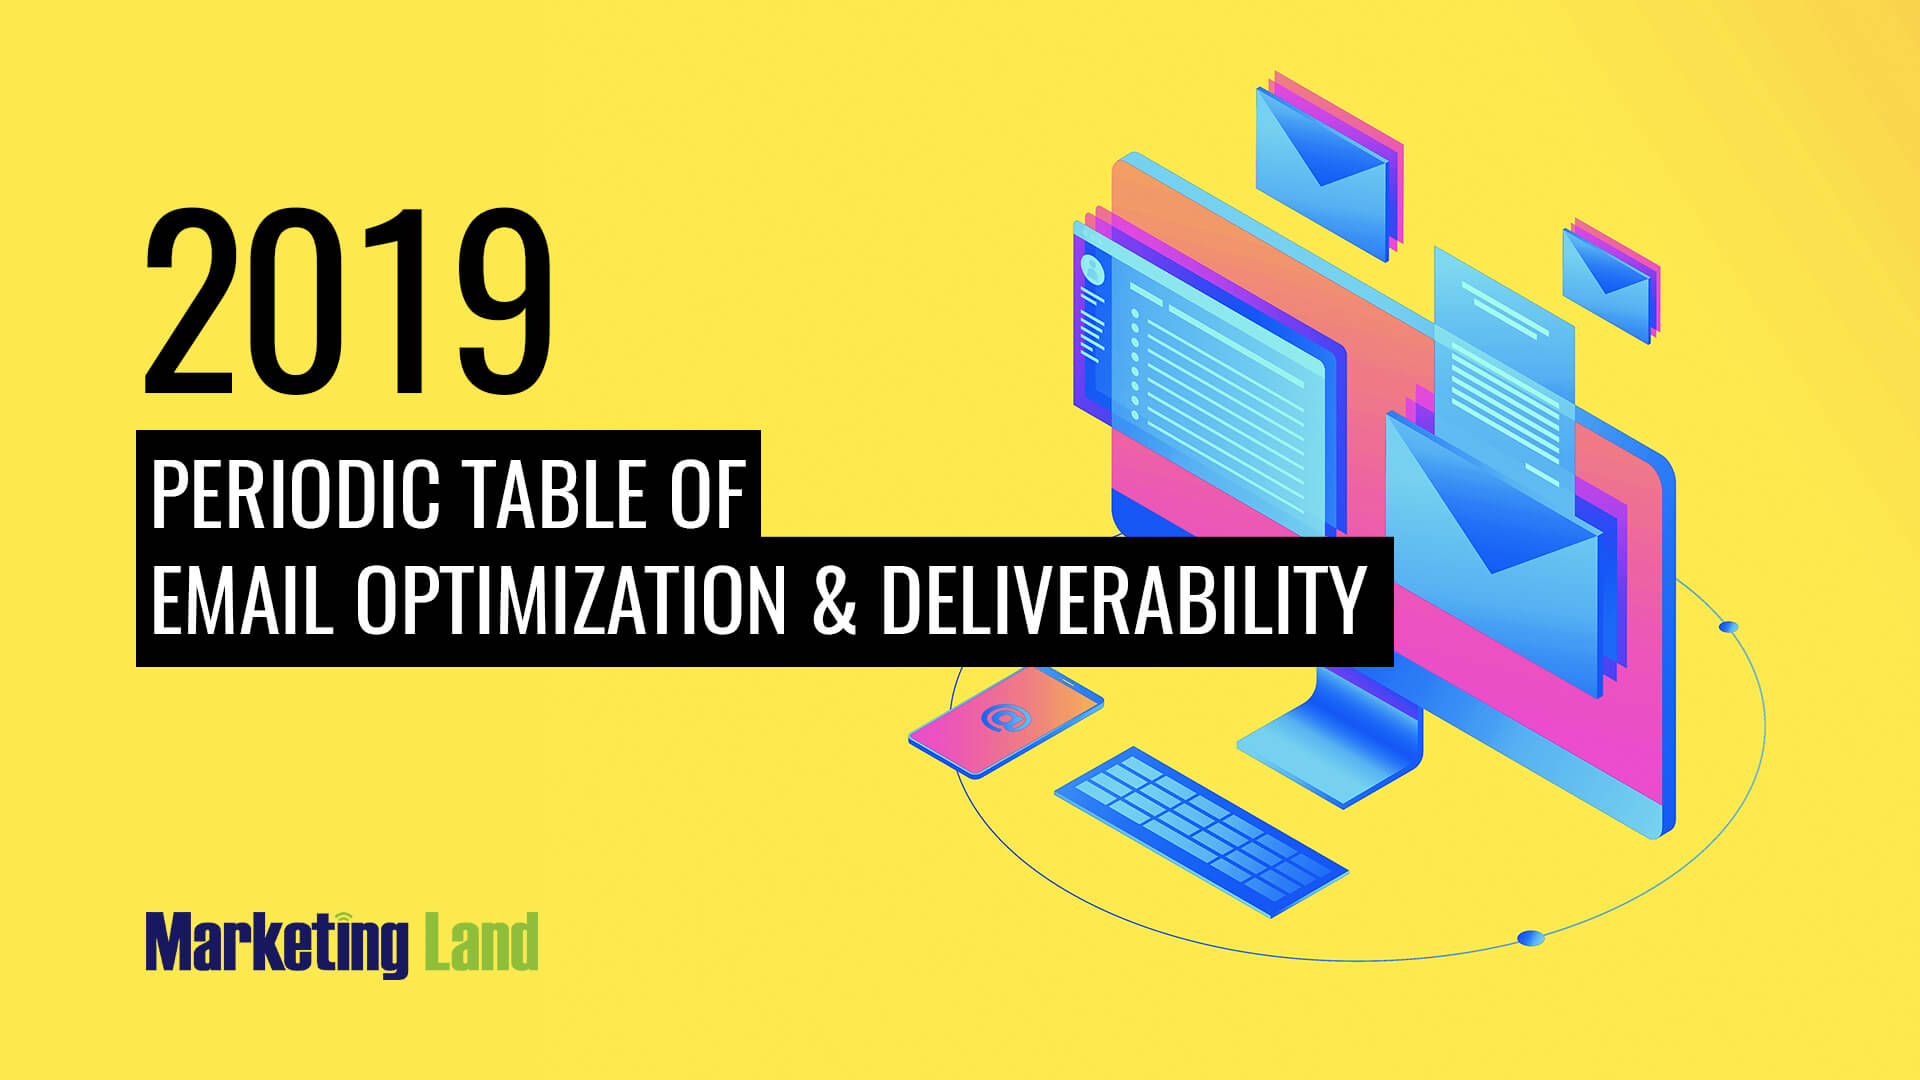 Introducing the Periodic Table of Email Optimization and Deliverability